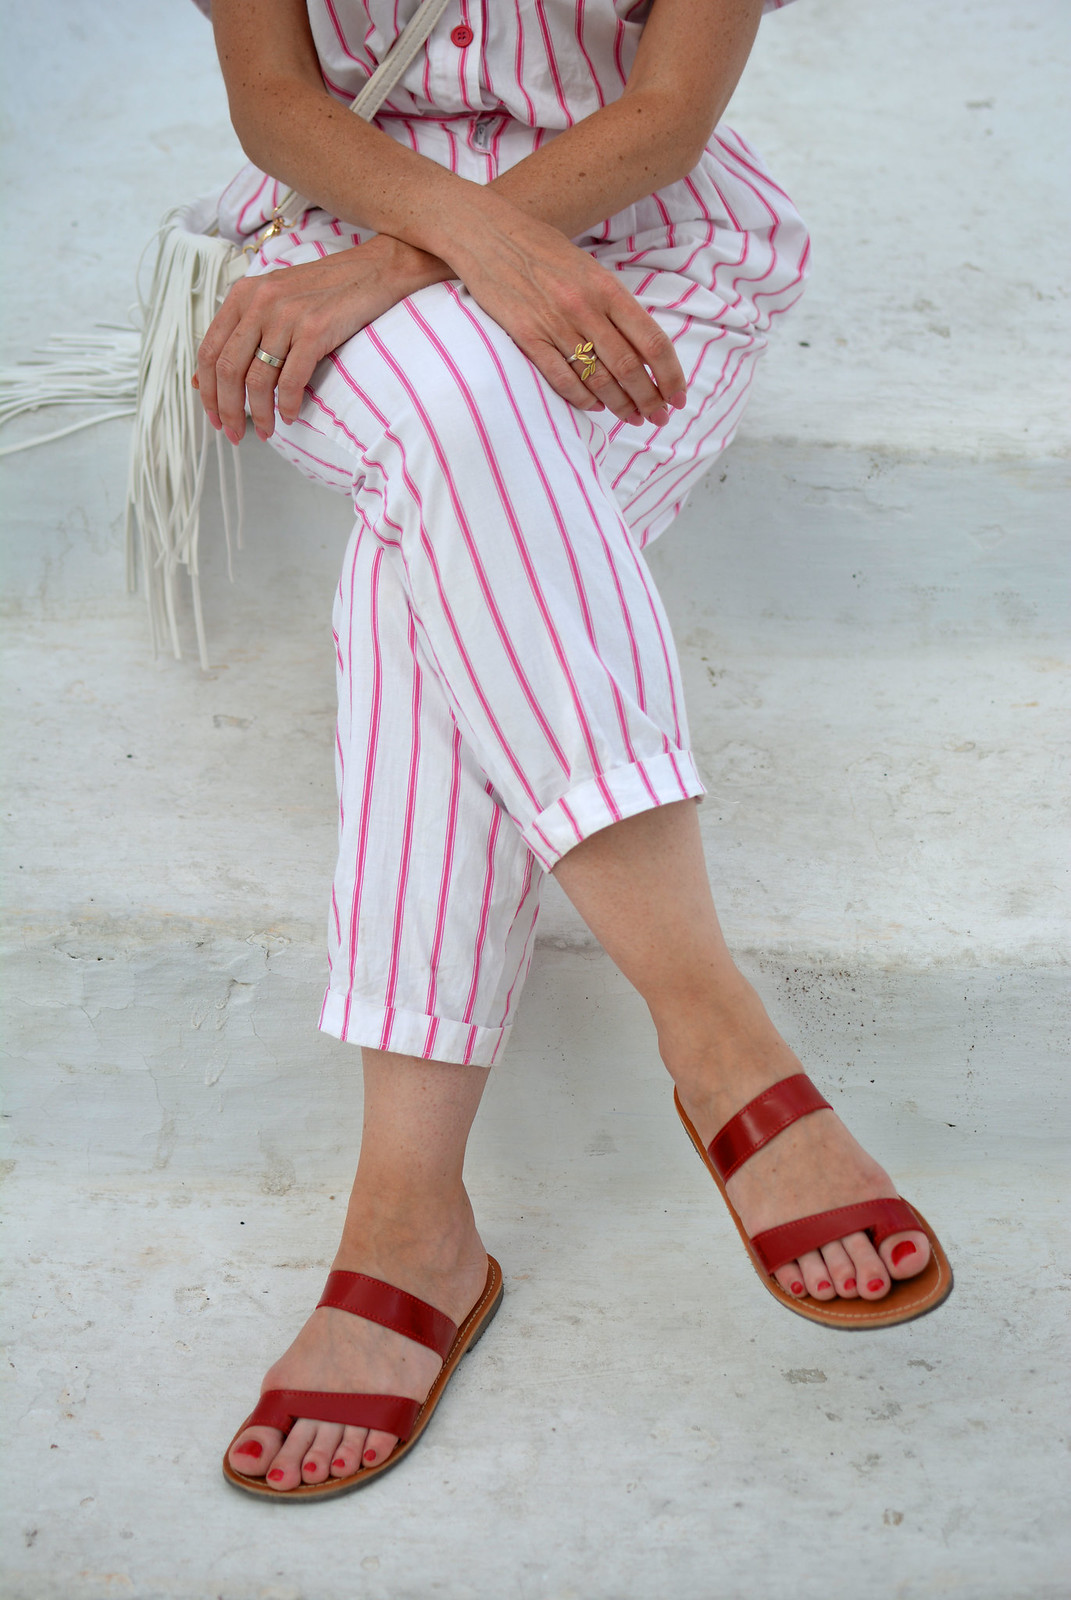 Vintage DVF pink and white striped jumpsuit, red sandals